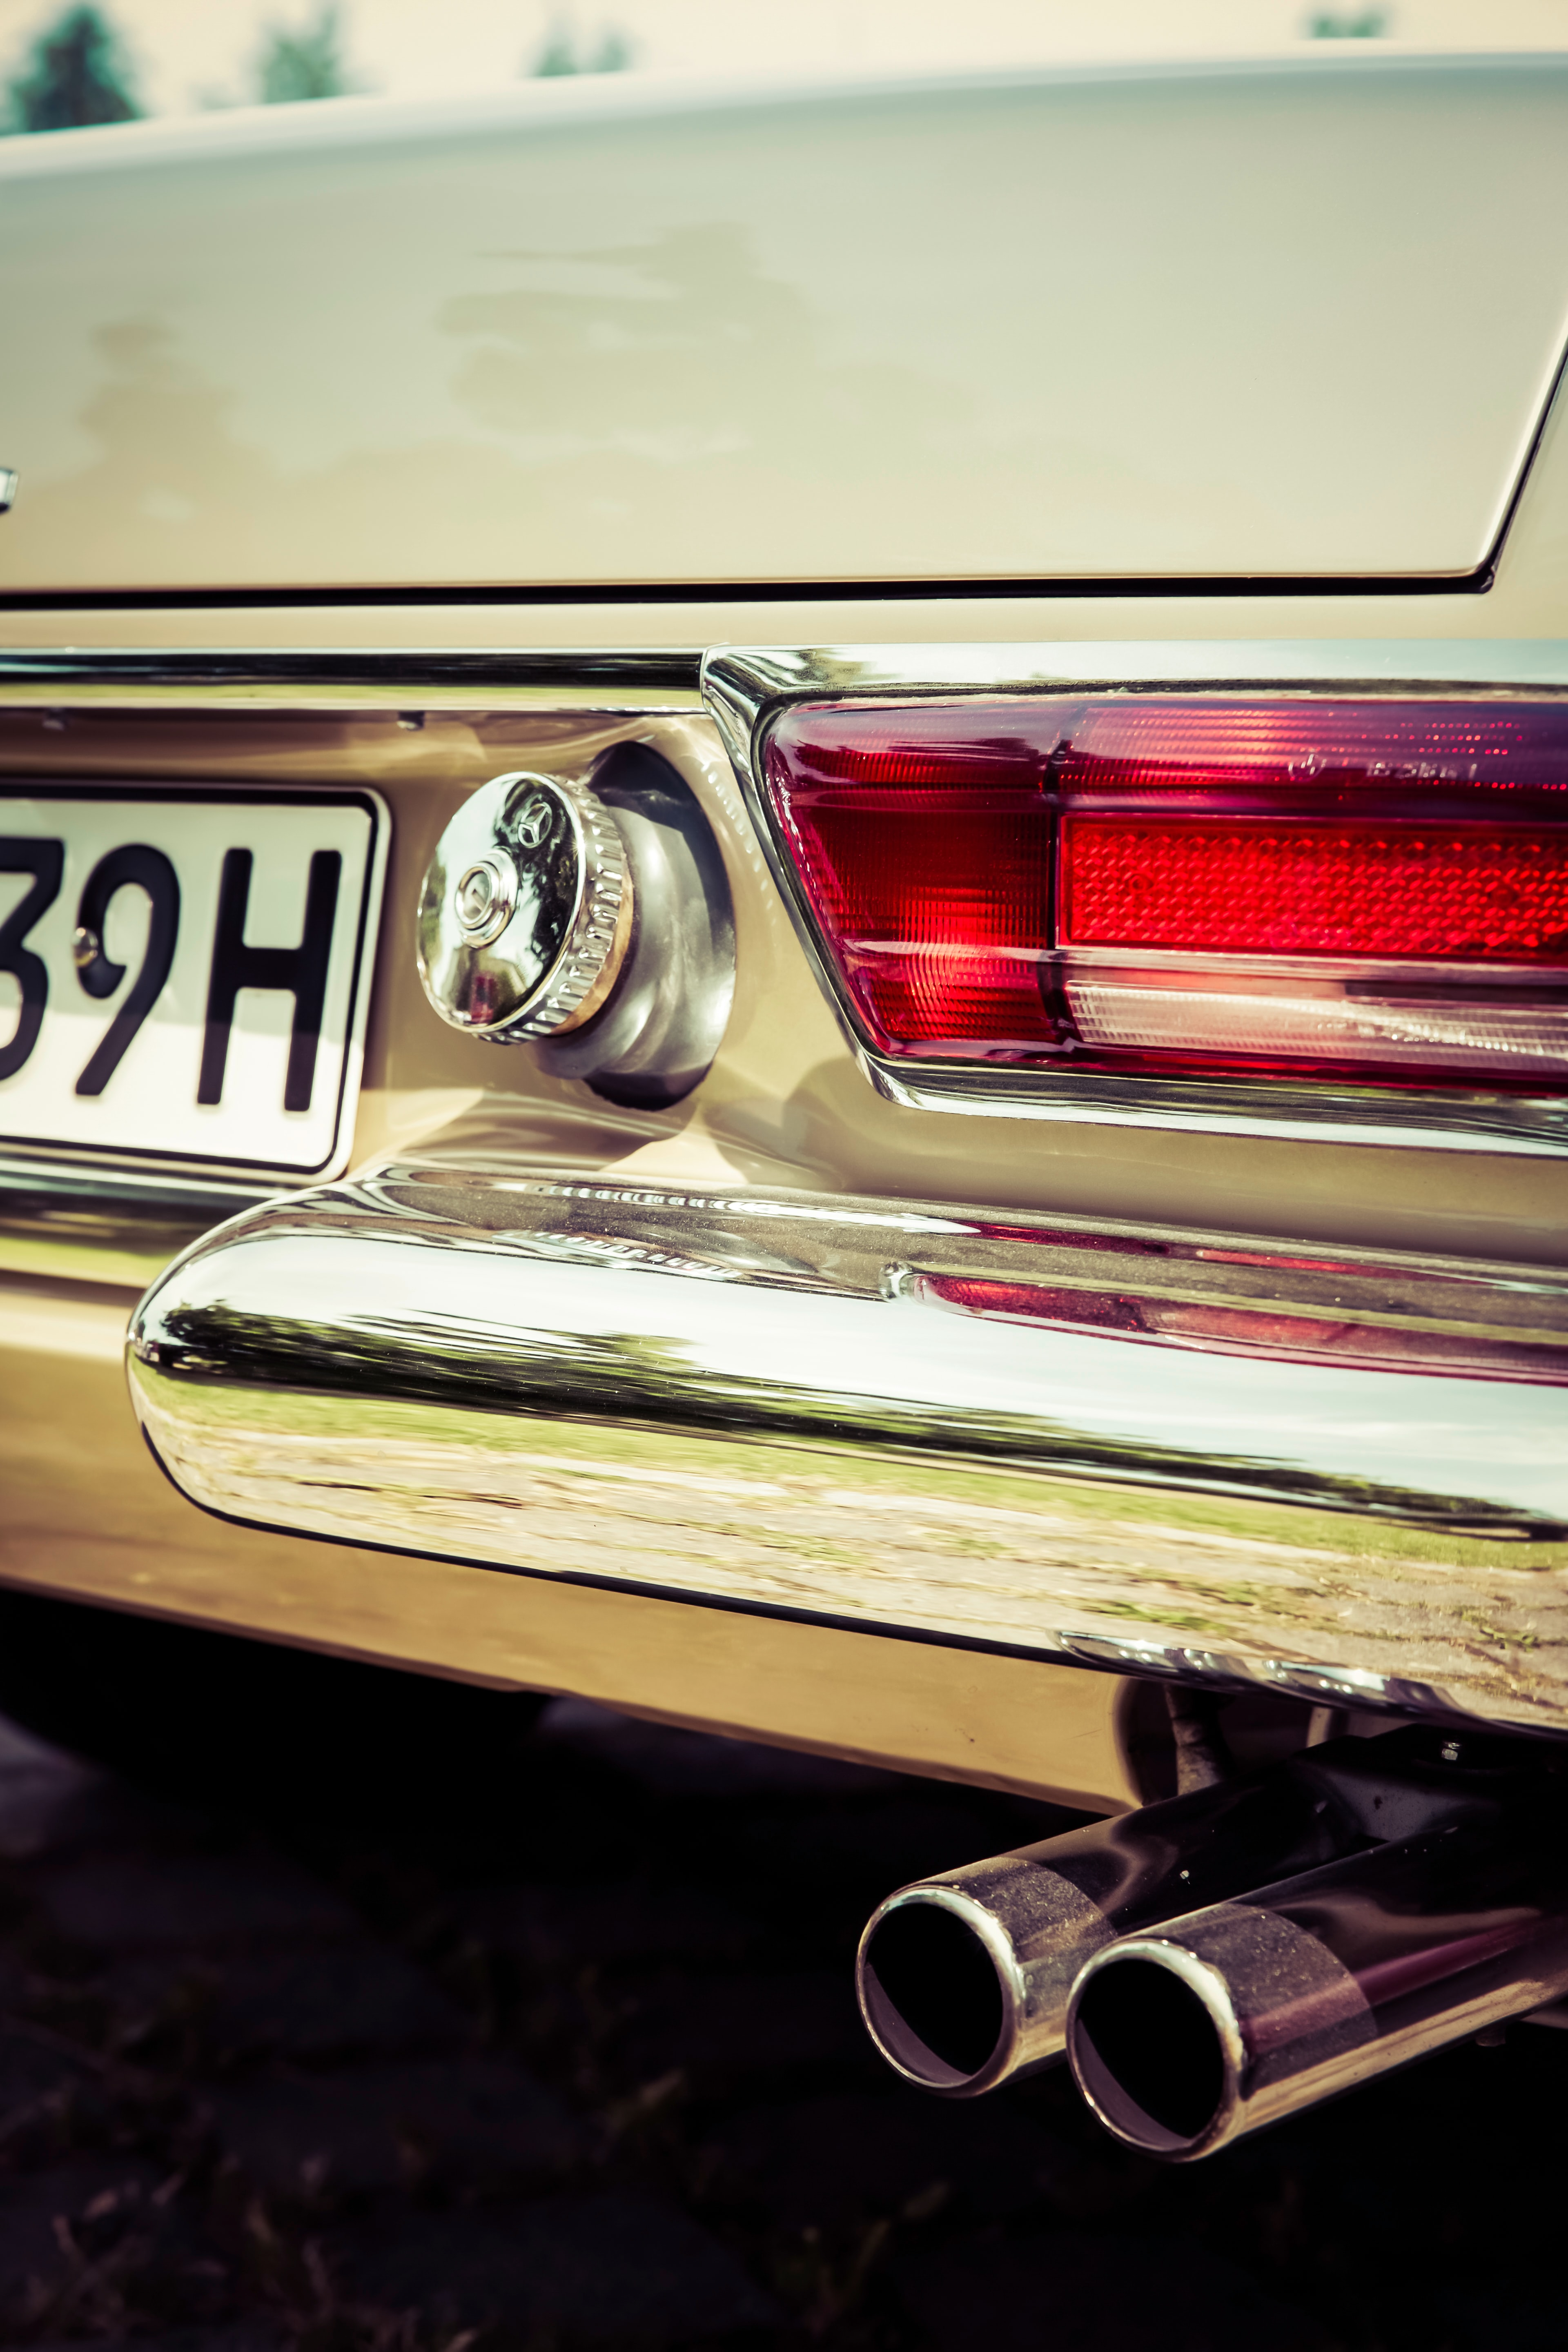 Macro view of the back of a vintage car's tail light and exhaust pipe.